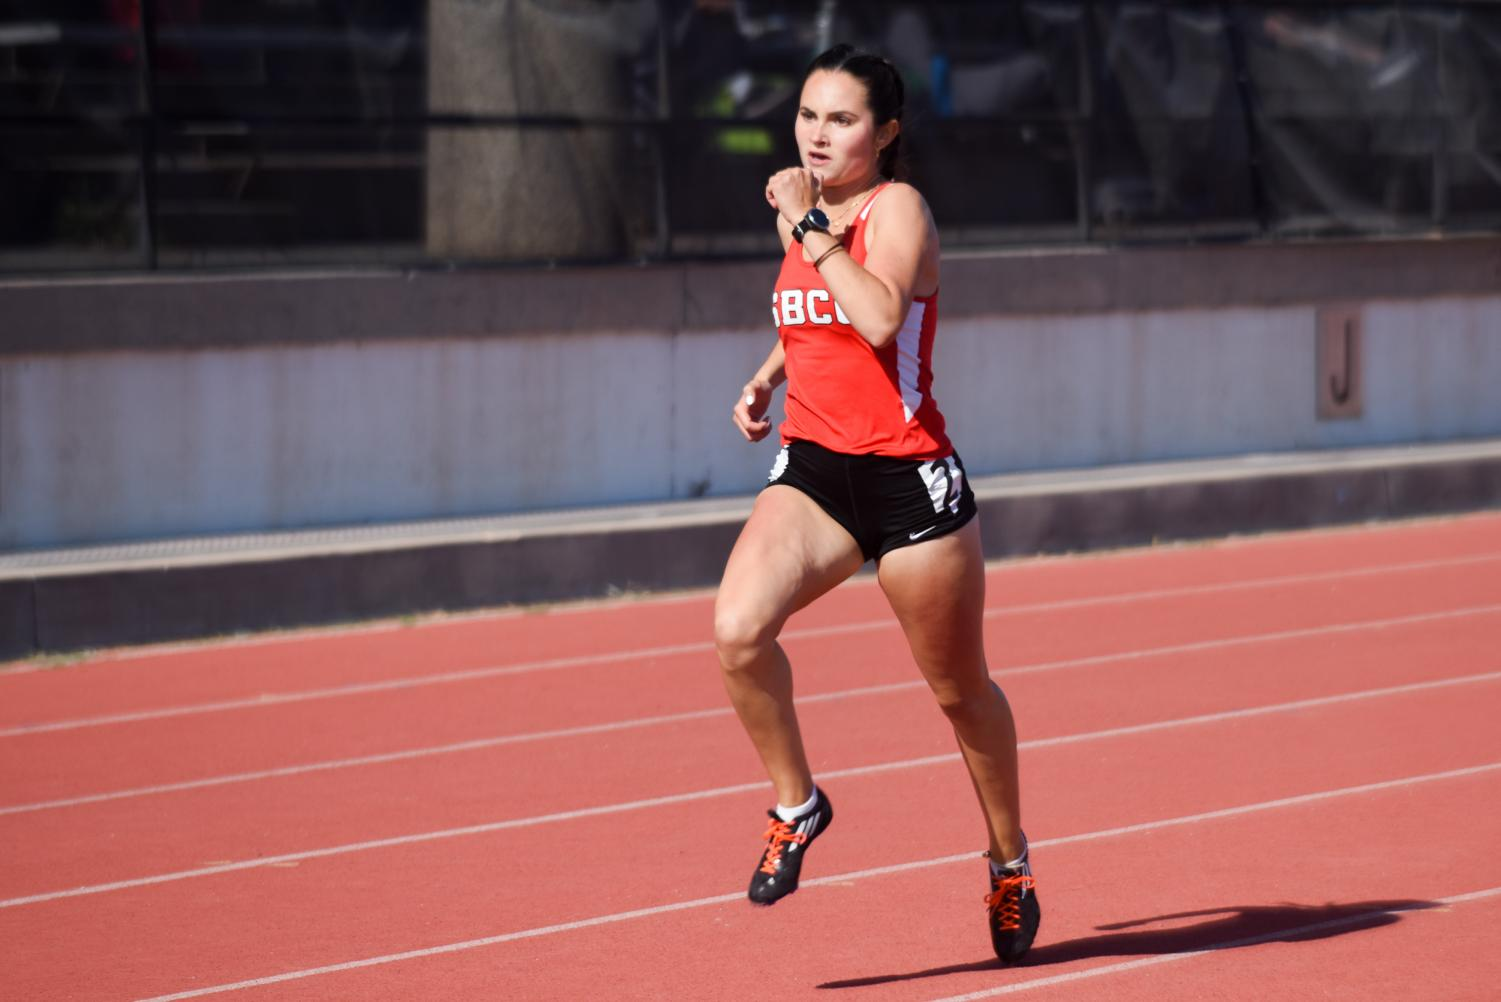 Christy Chavira runs in the 1500 meter race during the Easter Open on Friday, April 12, 2019, at La Playa Stadium at City College in Santa Barbara, Calif. Chavira placed second in this race.